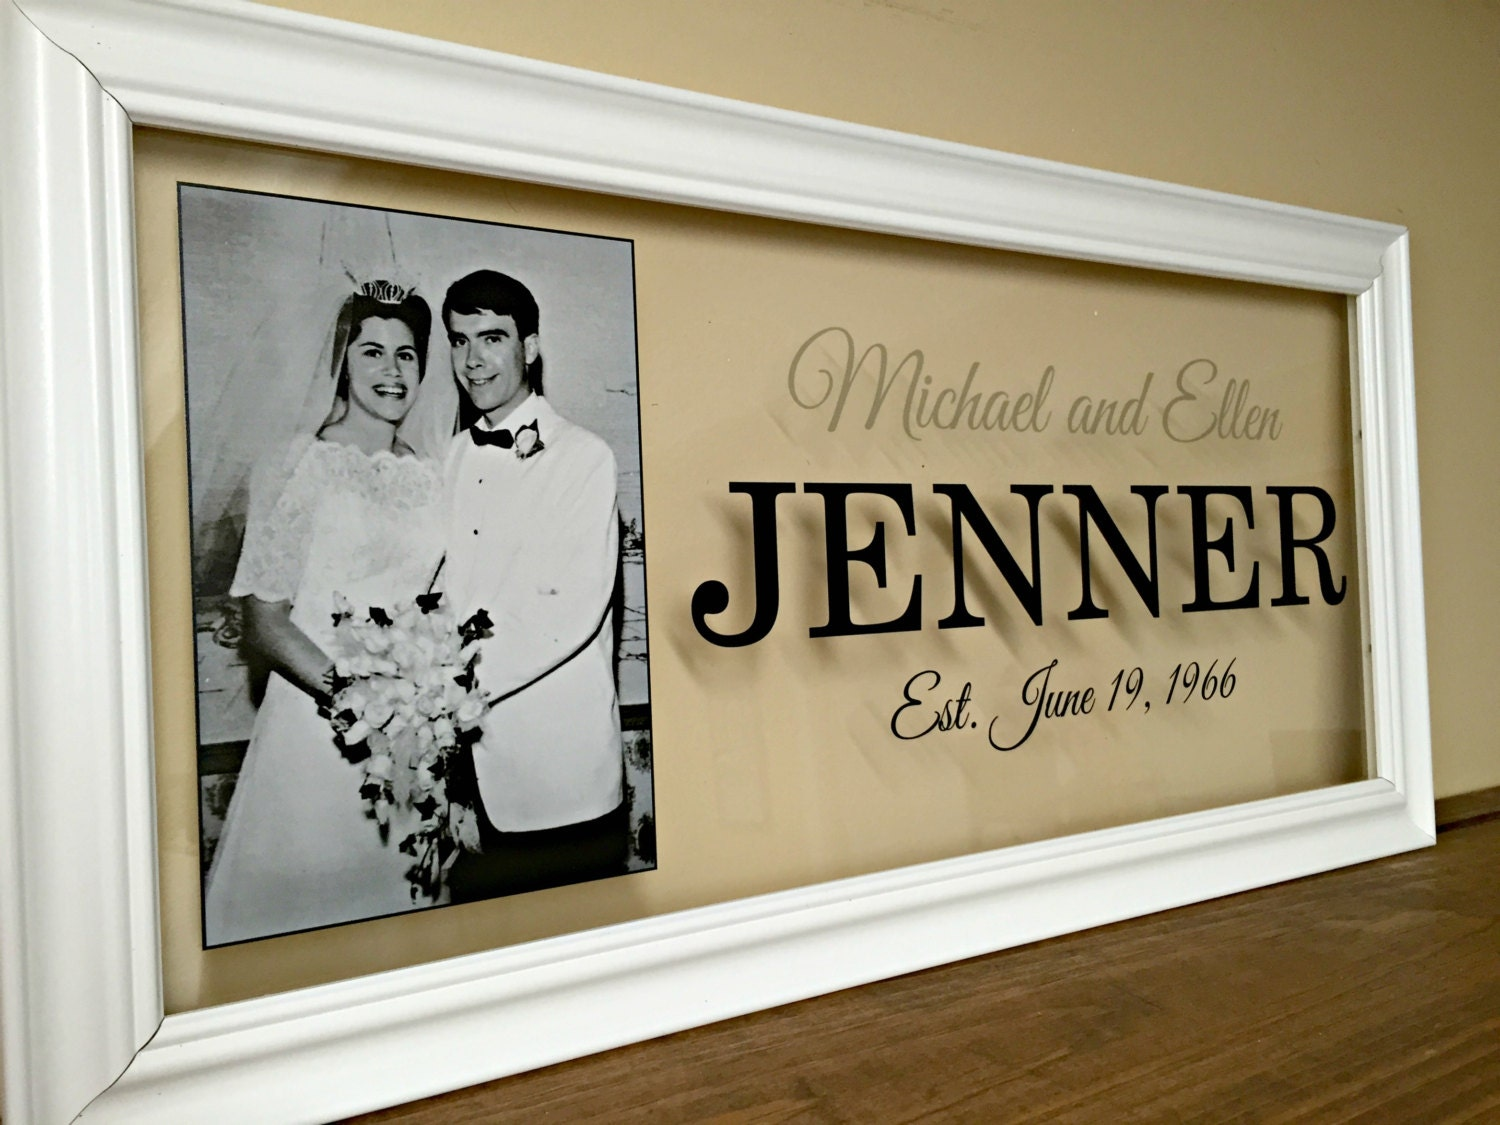 Wedding Anniversary Gift Parents: 50th Anniversary Gifts For Parents 50th Anniversary Gifts